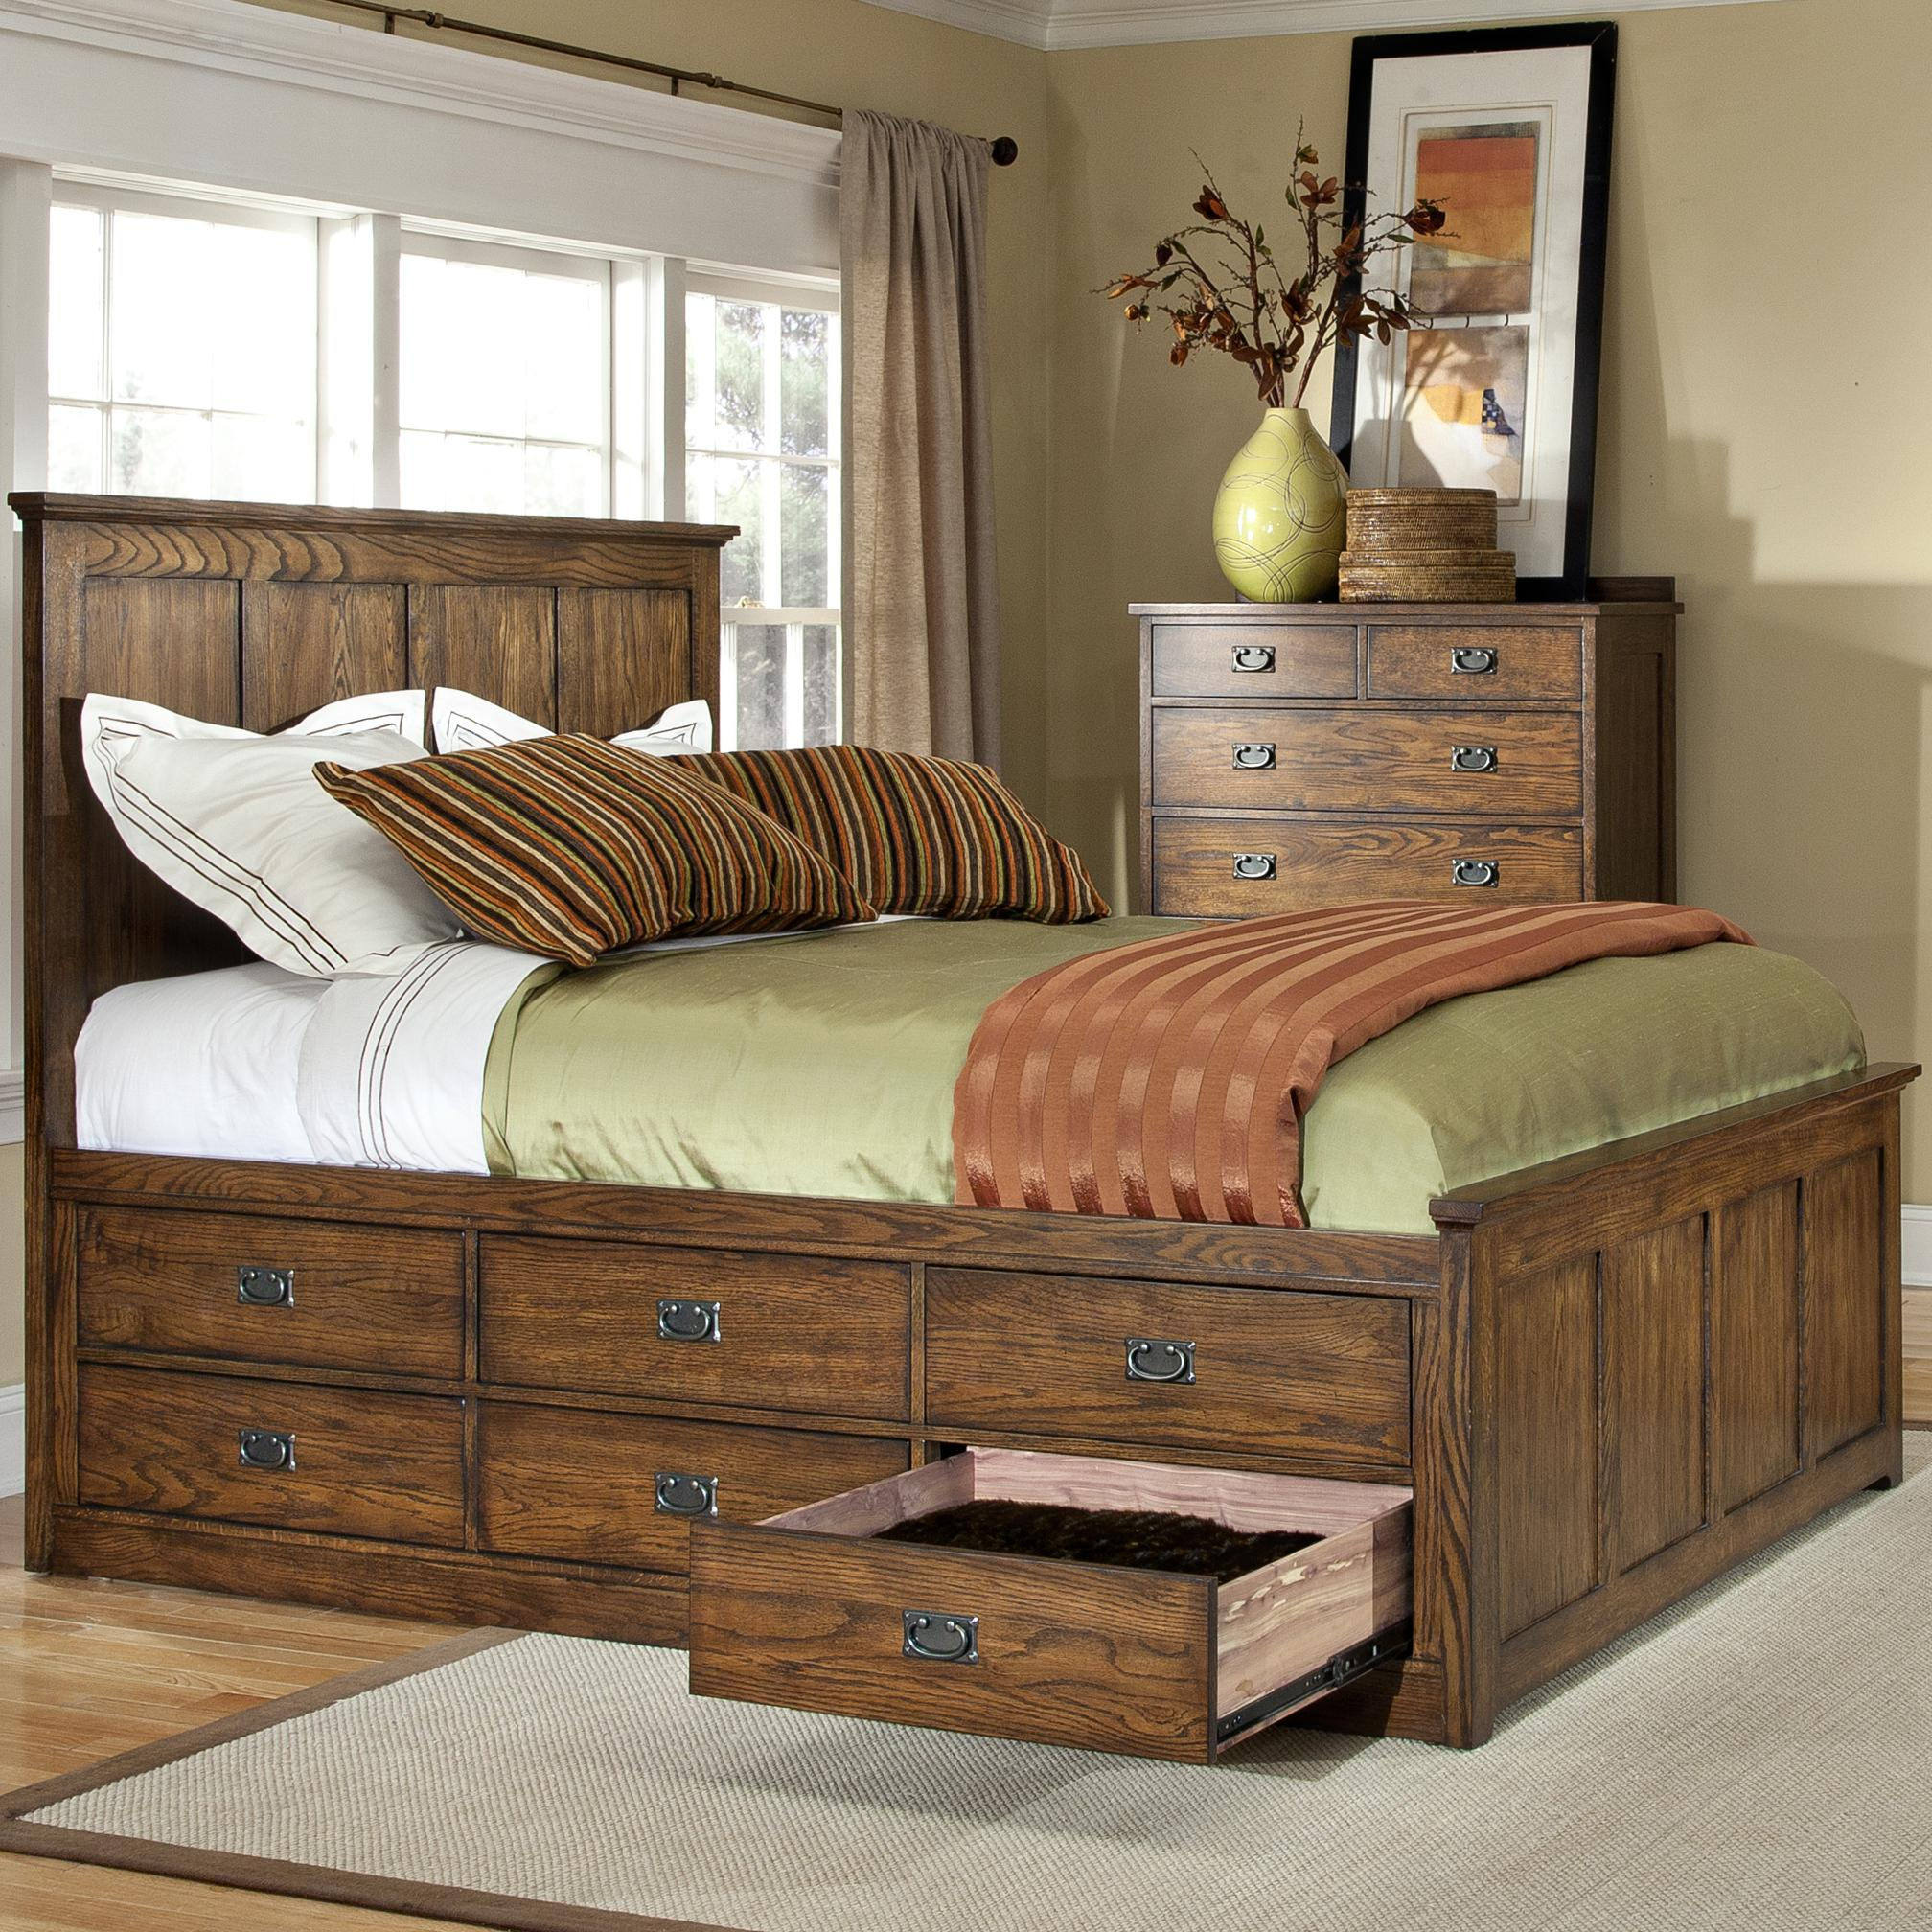 King Bed With 9 Storage Drawers